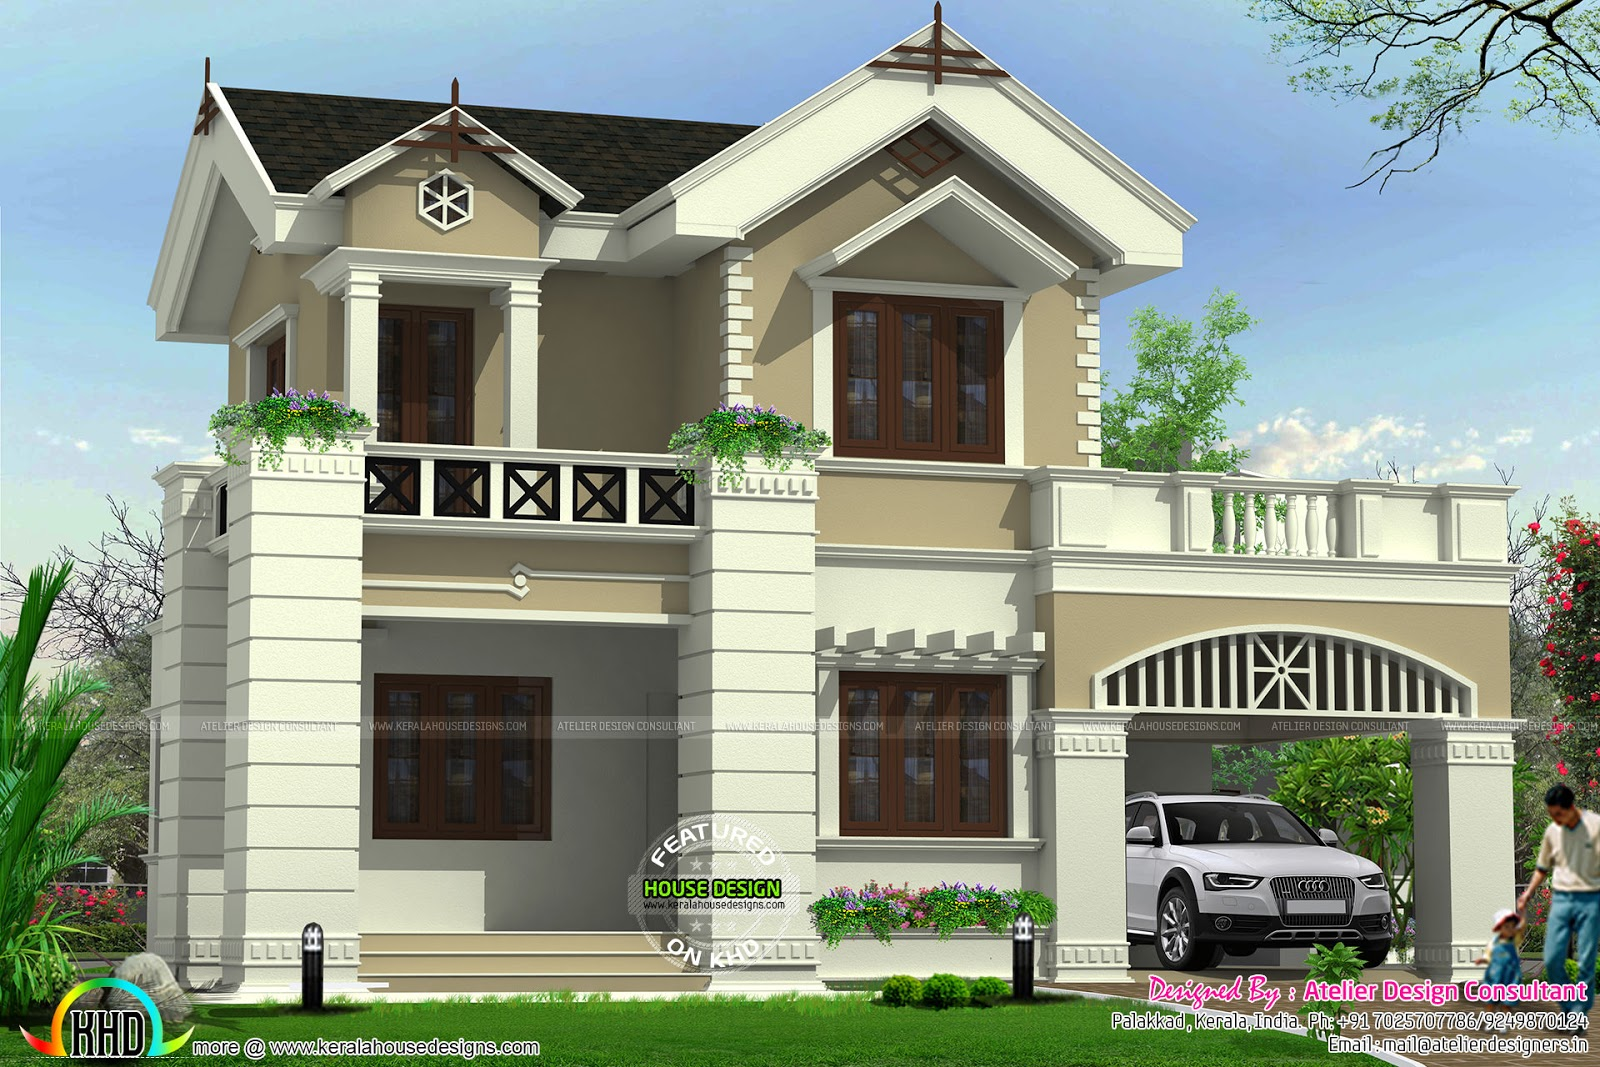 Cute victorian model home kerala home design and floor plans for Home and floor